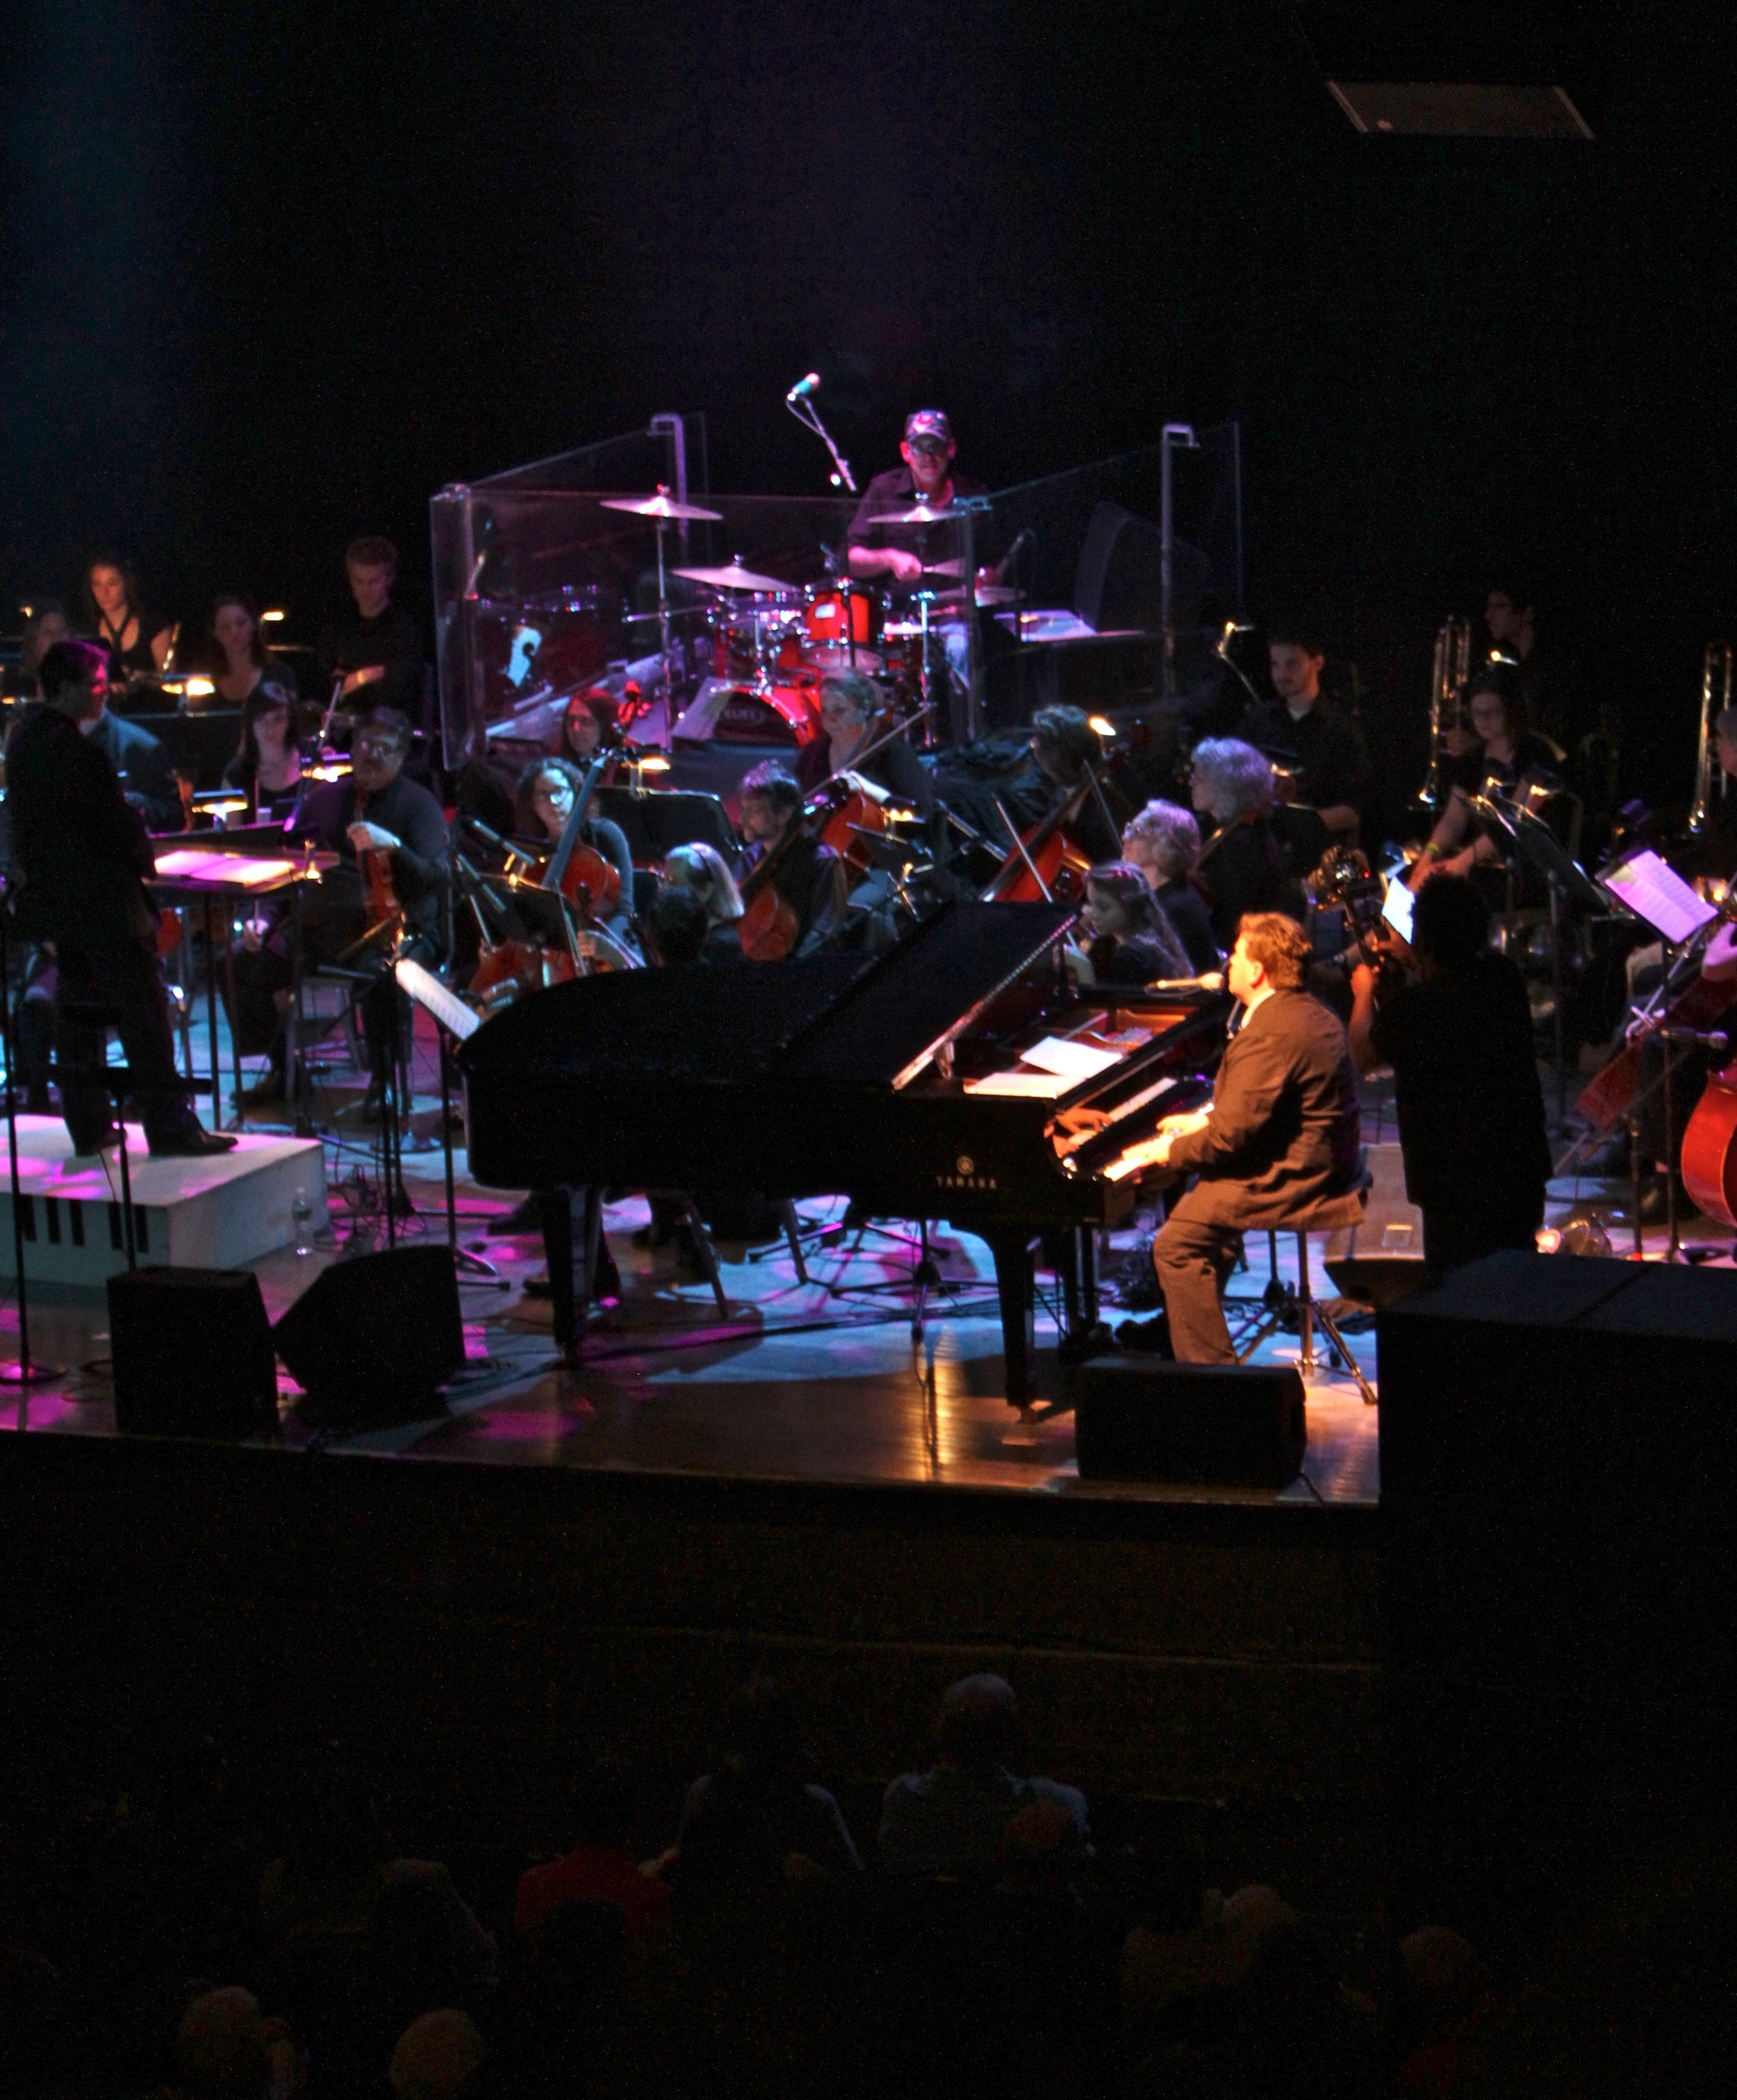 """""""I have found over the years that it takes passion and dedication to be successful in this business we call music. The Southern Maine Symphony Orchestra was just that. A night of """"The Music of Elton and Billy"""" was one of the most passionate performances I have been a part of since actually performing with Billy and Elton together for over ten years. Joe Boucher did an excellent job as both Billy and Elton. Backed by a four piece rhythm section and a fifty two piece orchestra made it an event I was proud to be a part of and am looking forward to doing again!""""        Liberty DeVitto      Billy Joel Band drummer 1976 - 2006"""